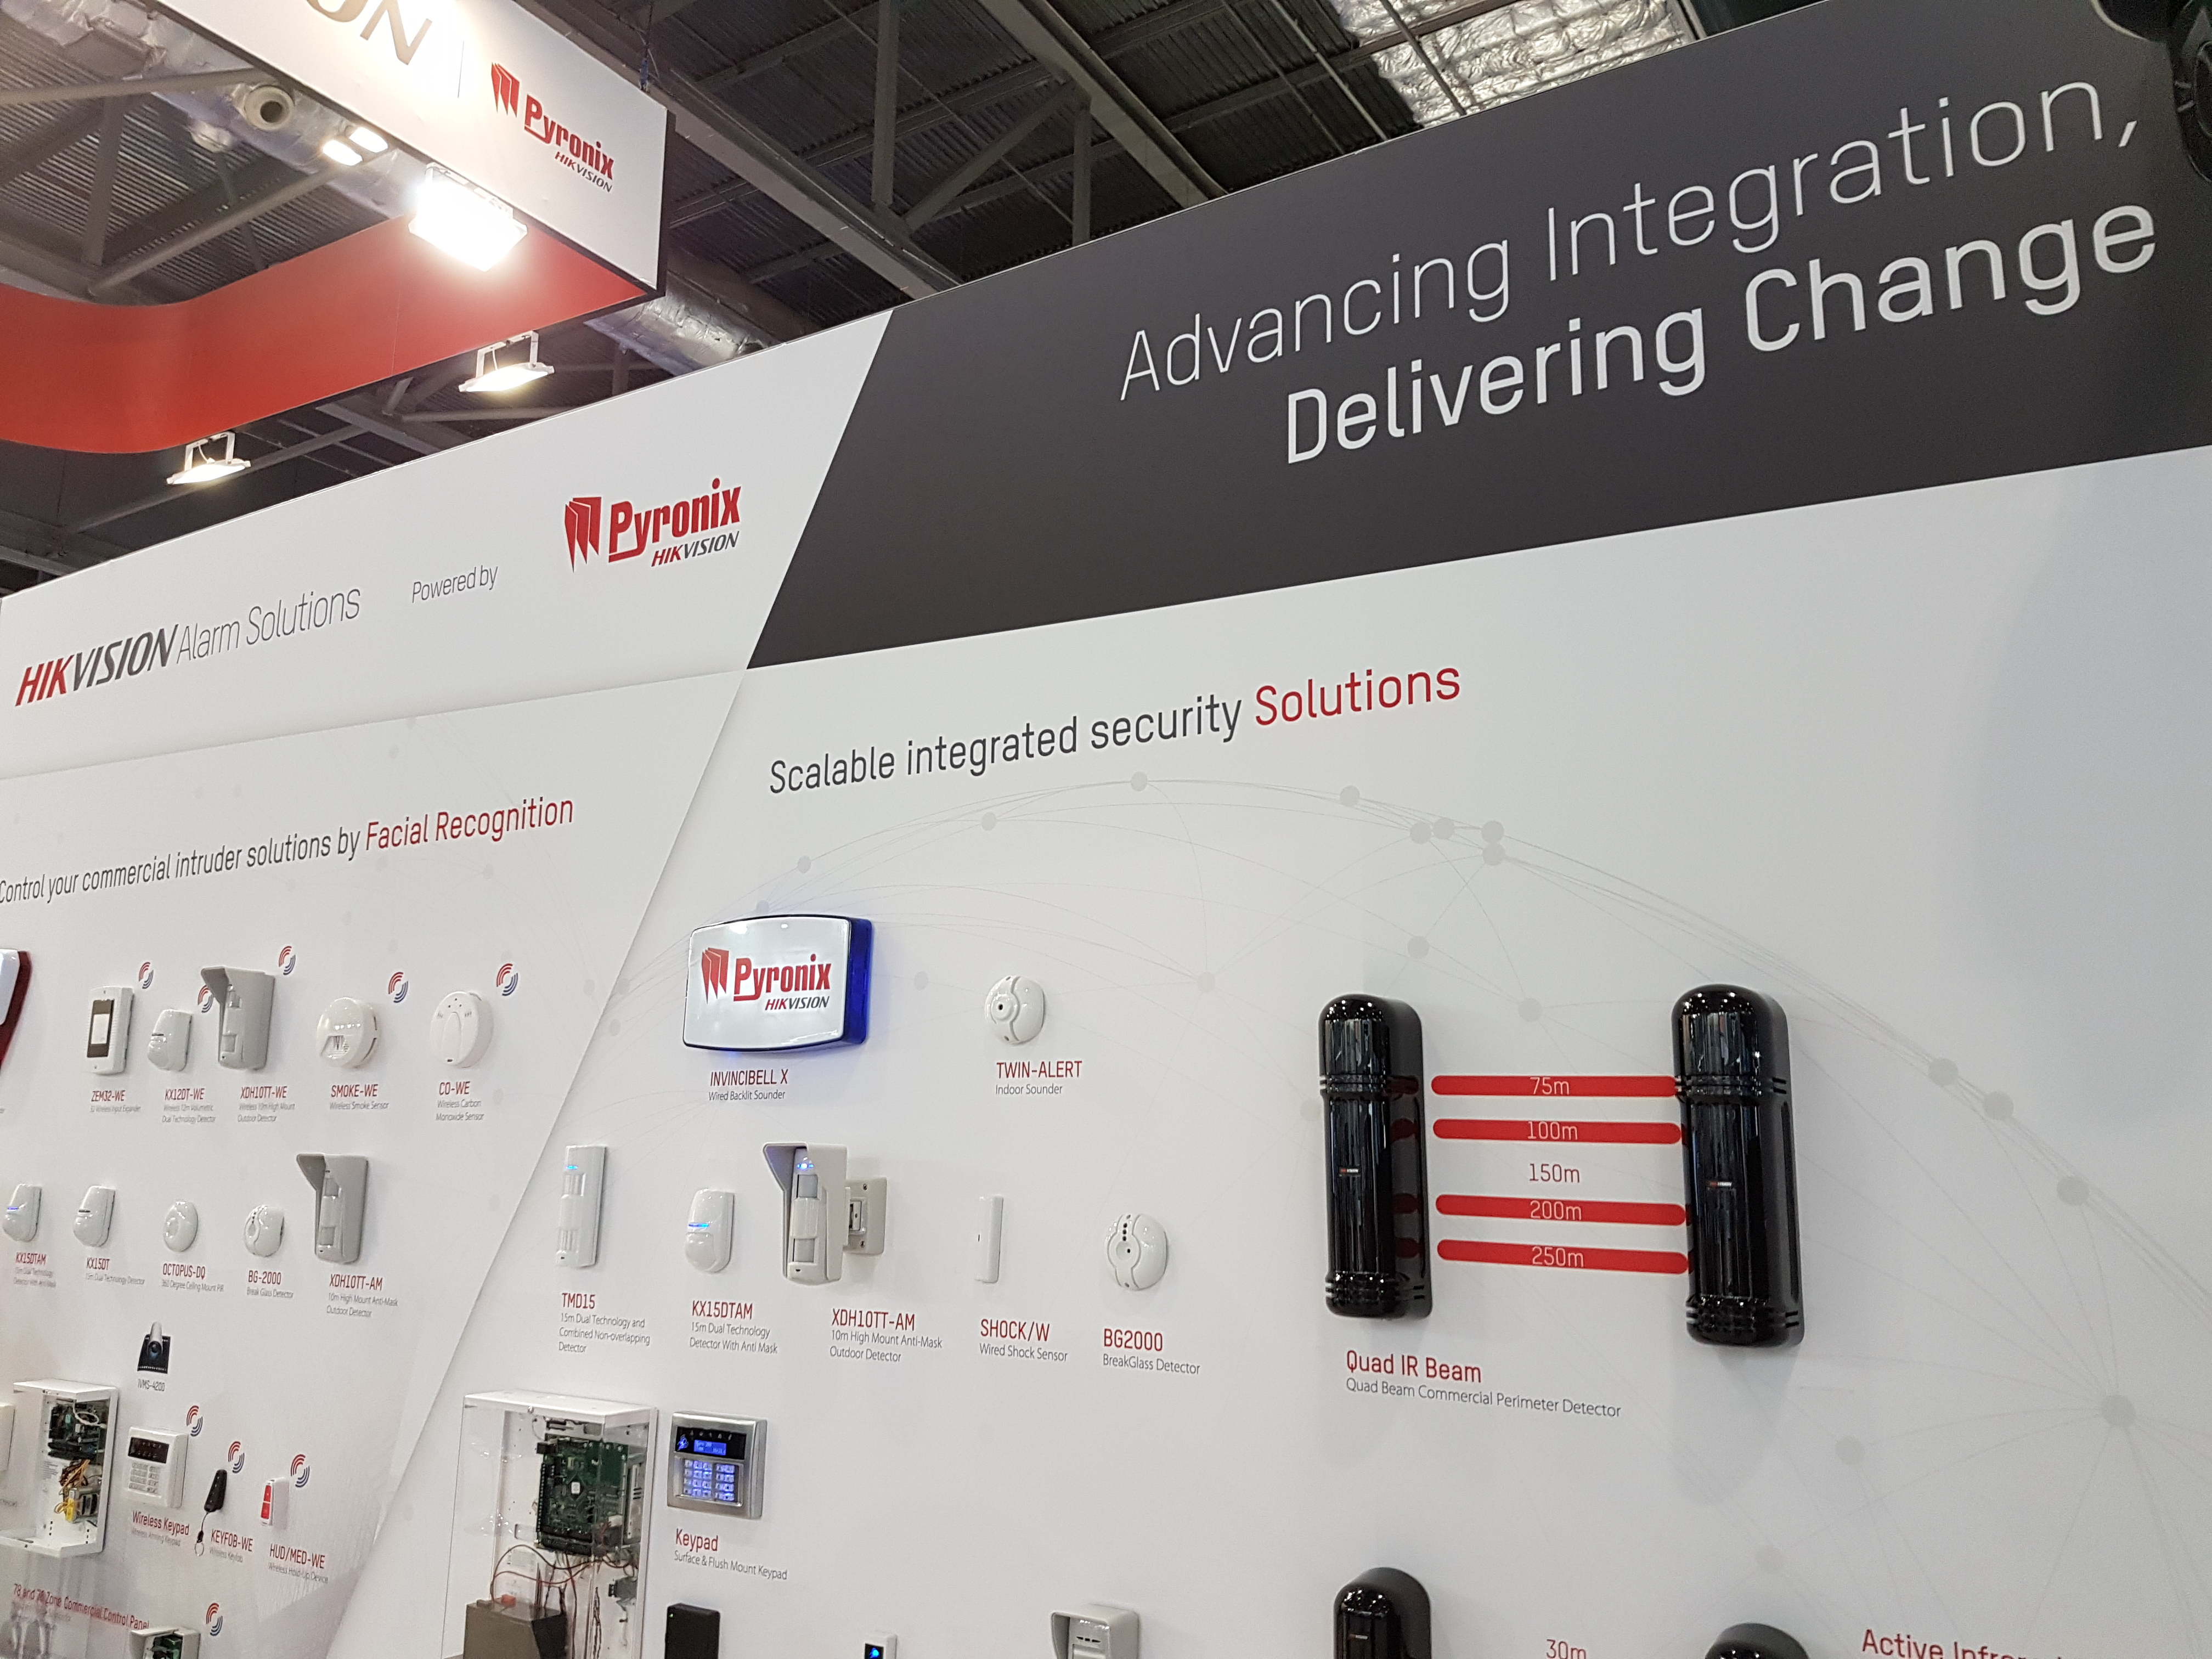 Ifsec 2018 A Show Of Delivering Change Pyronix The Experience Each Area Provided Here Now And Future Security With Offerings That Are Available As Well Soon To Be An